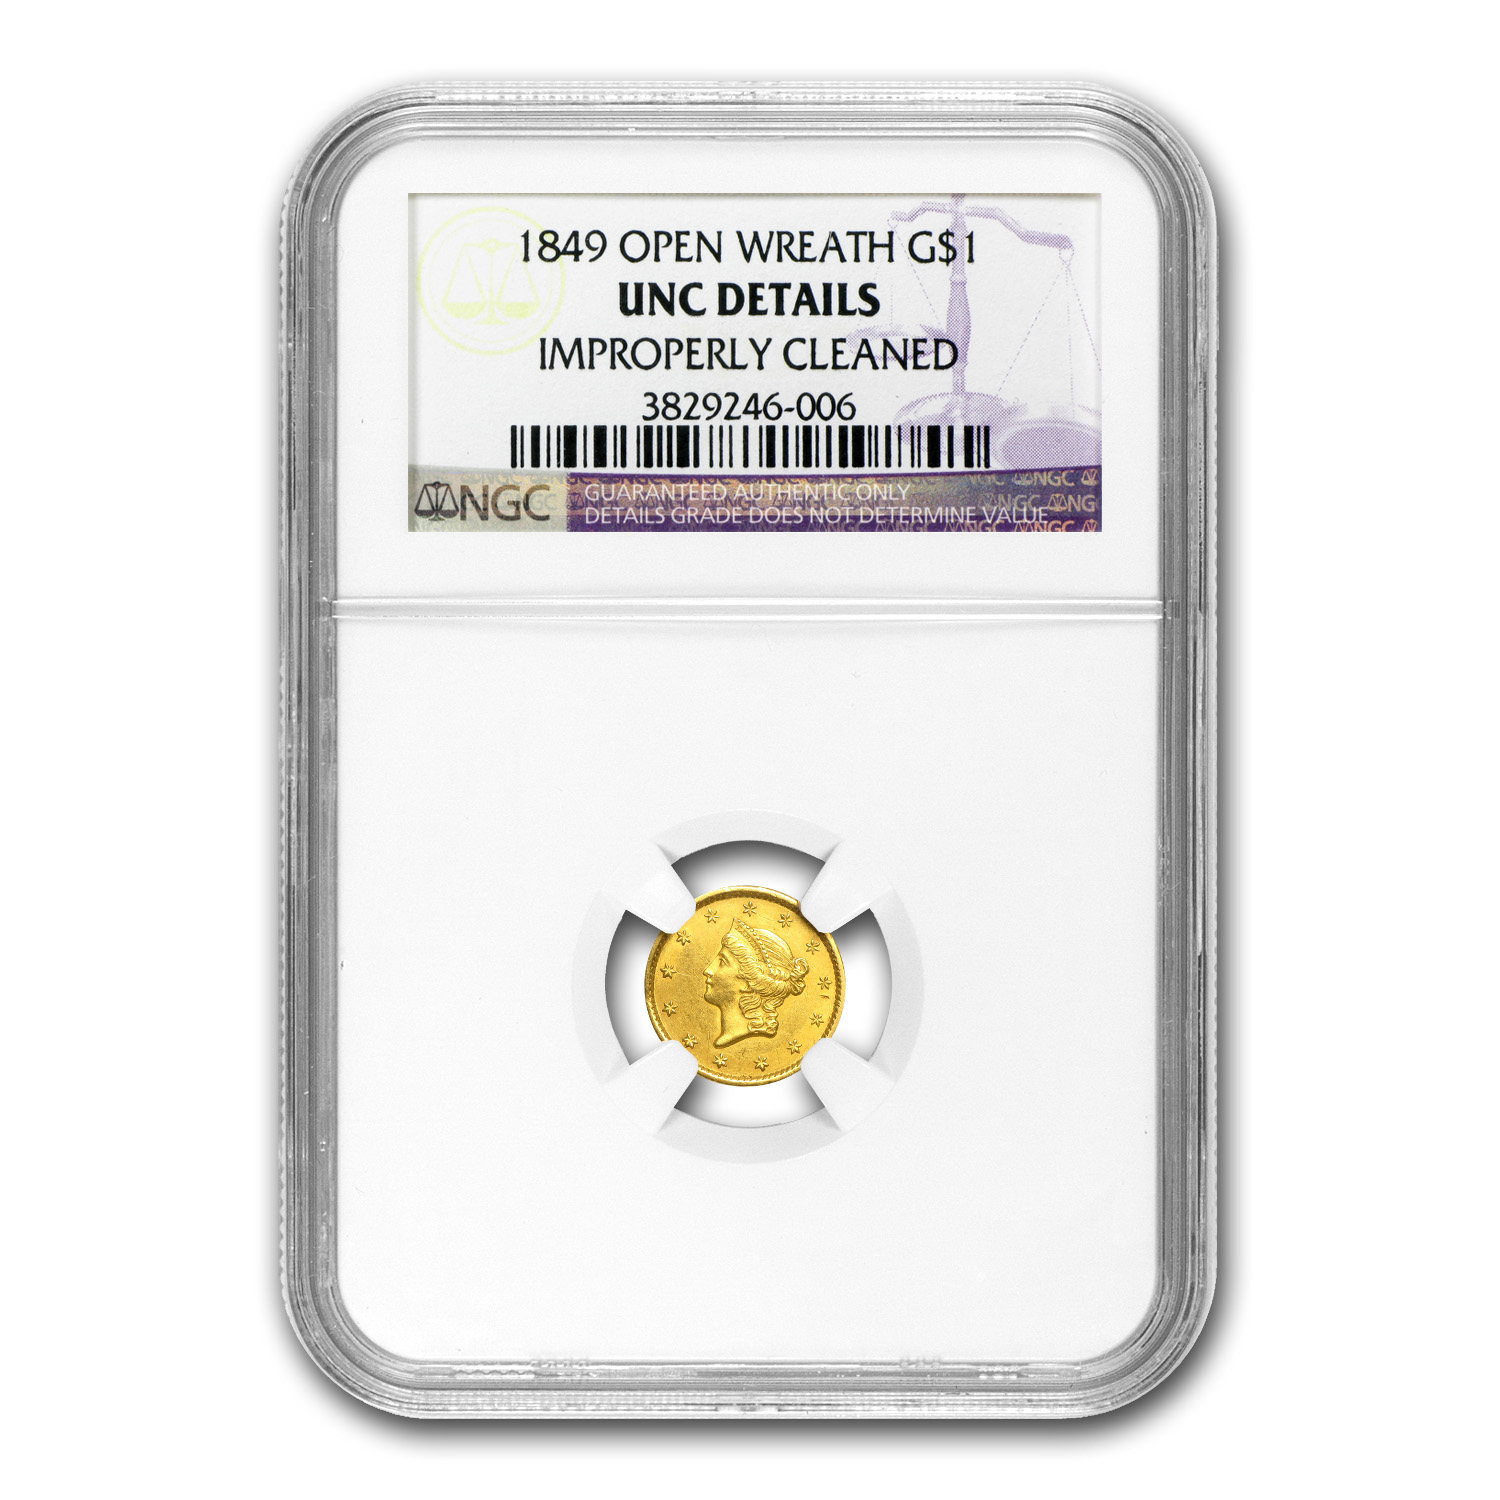 1849 $1 Liberty Head Gold - Open Wreath - Unc Details - NGC